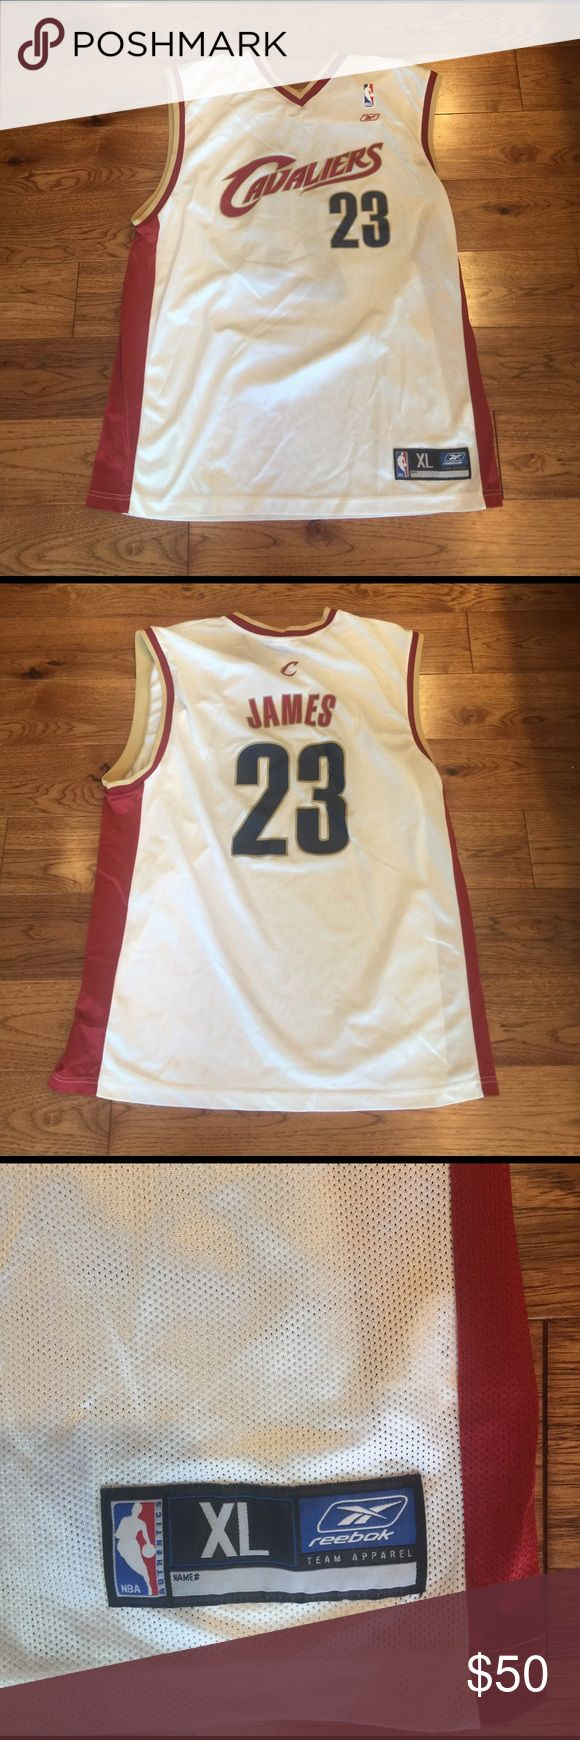 Cavs black t shirt jersey - Men S Cavs Lebron James Jersey Xl From Rookie Year